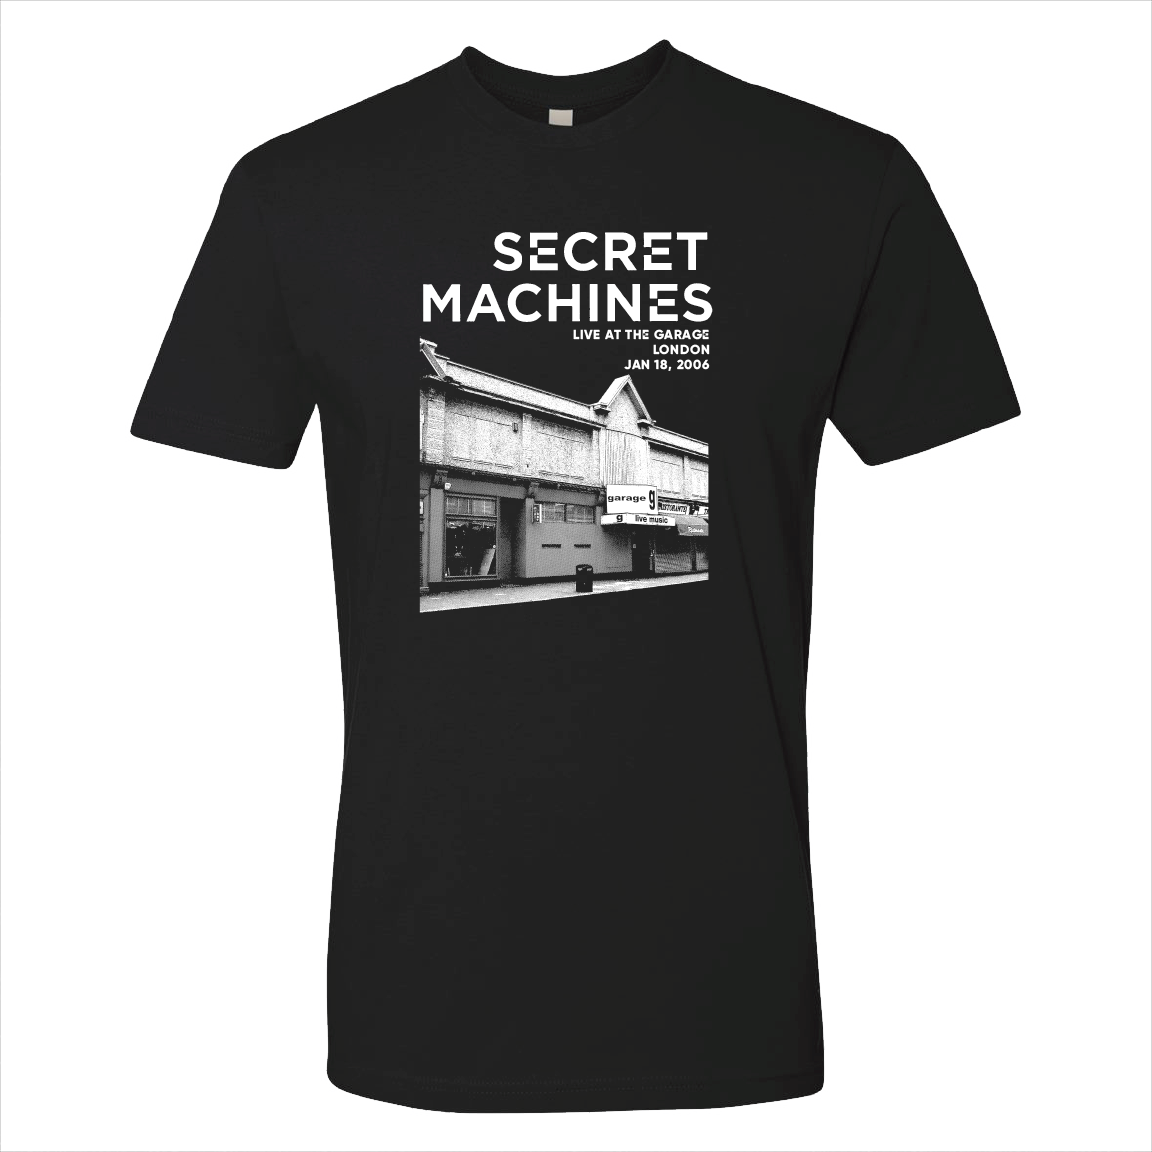 Live at the Garage T-shirt - SOLD OUT